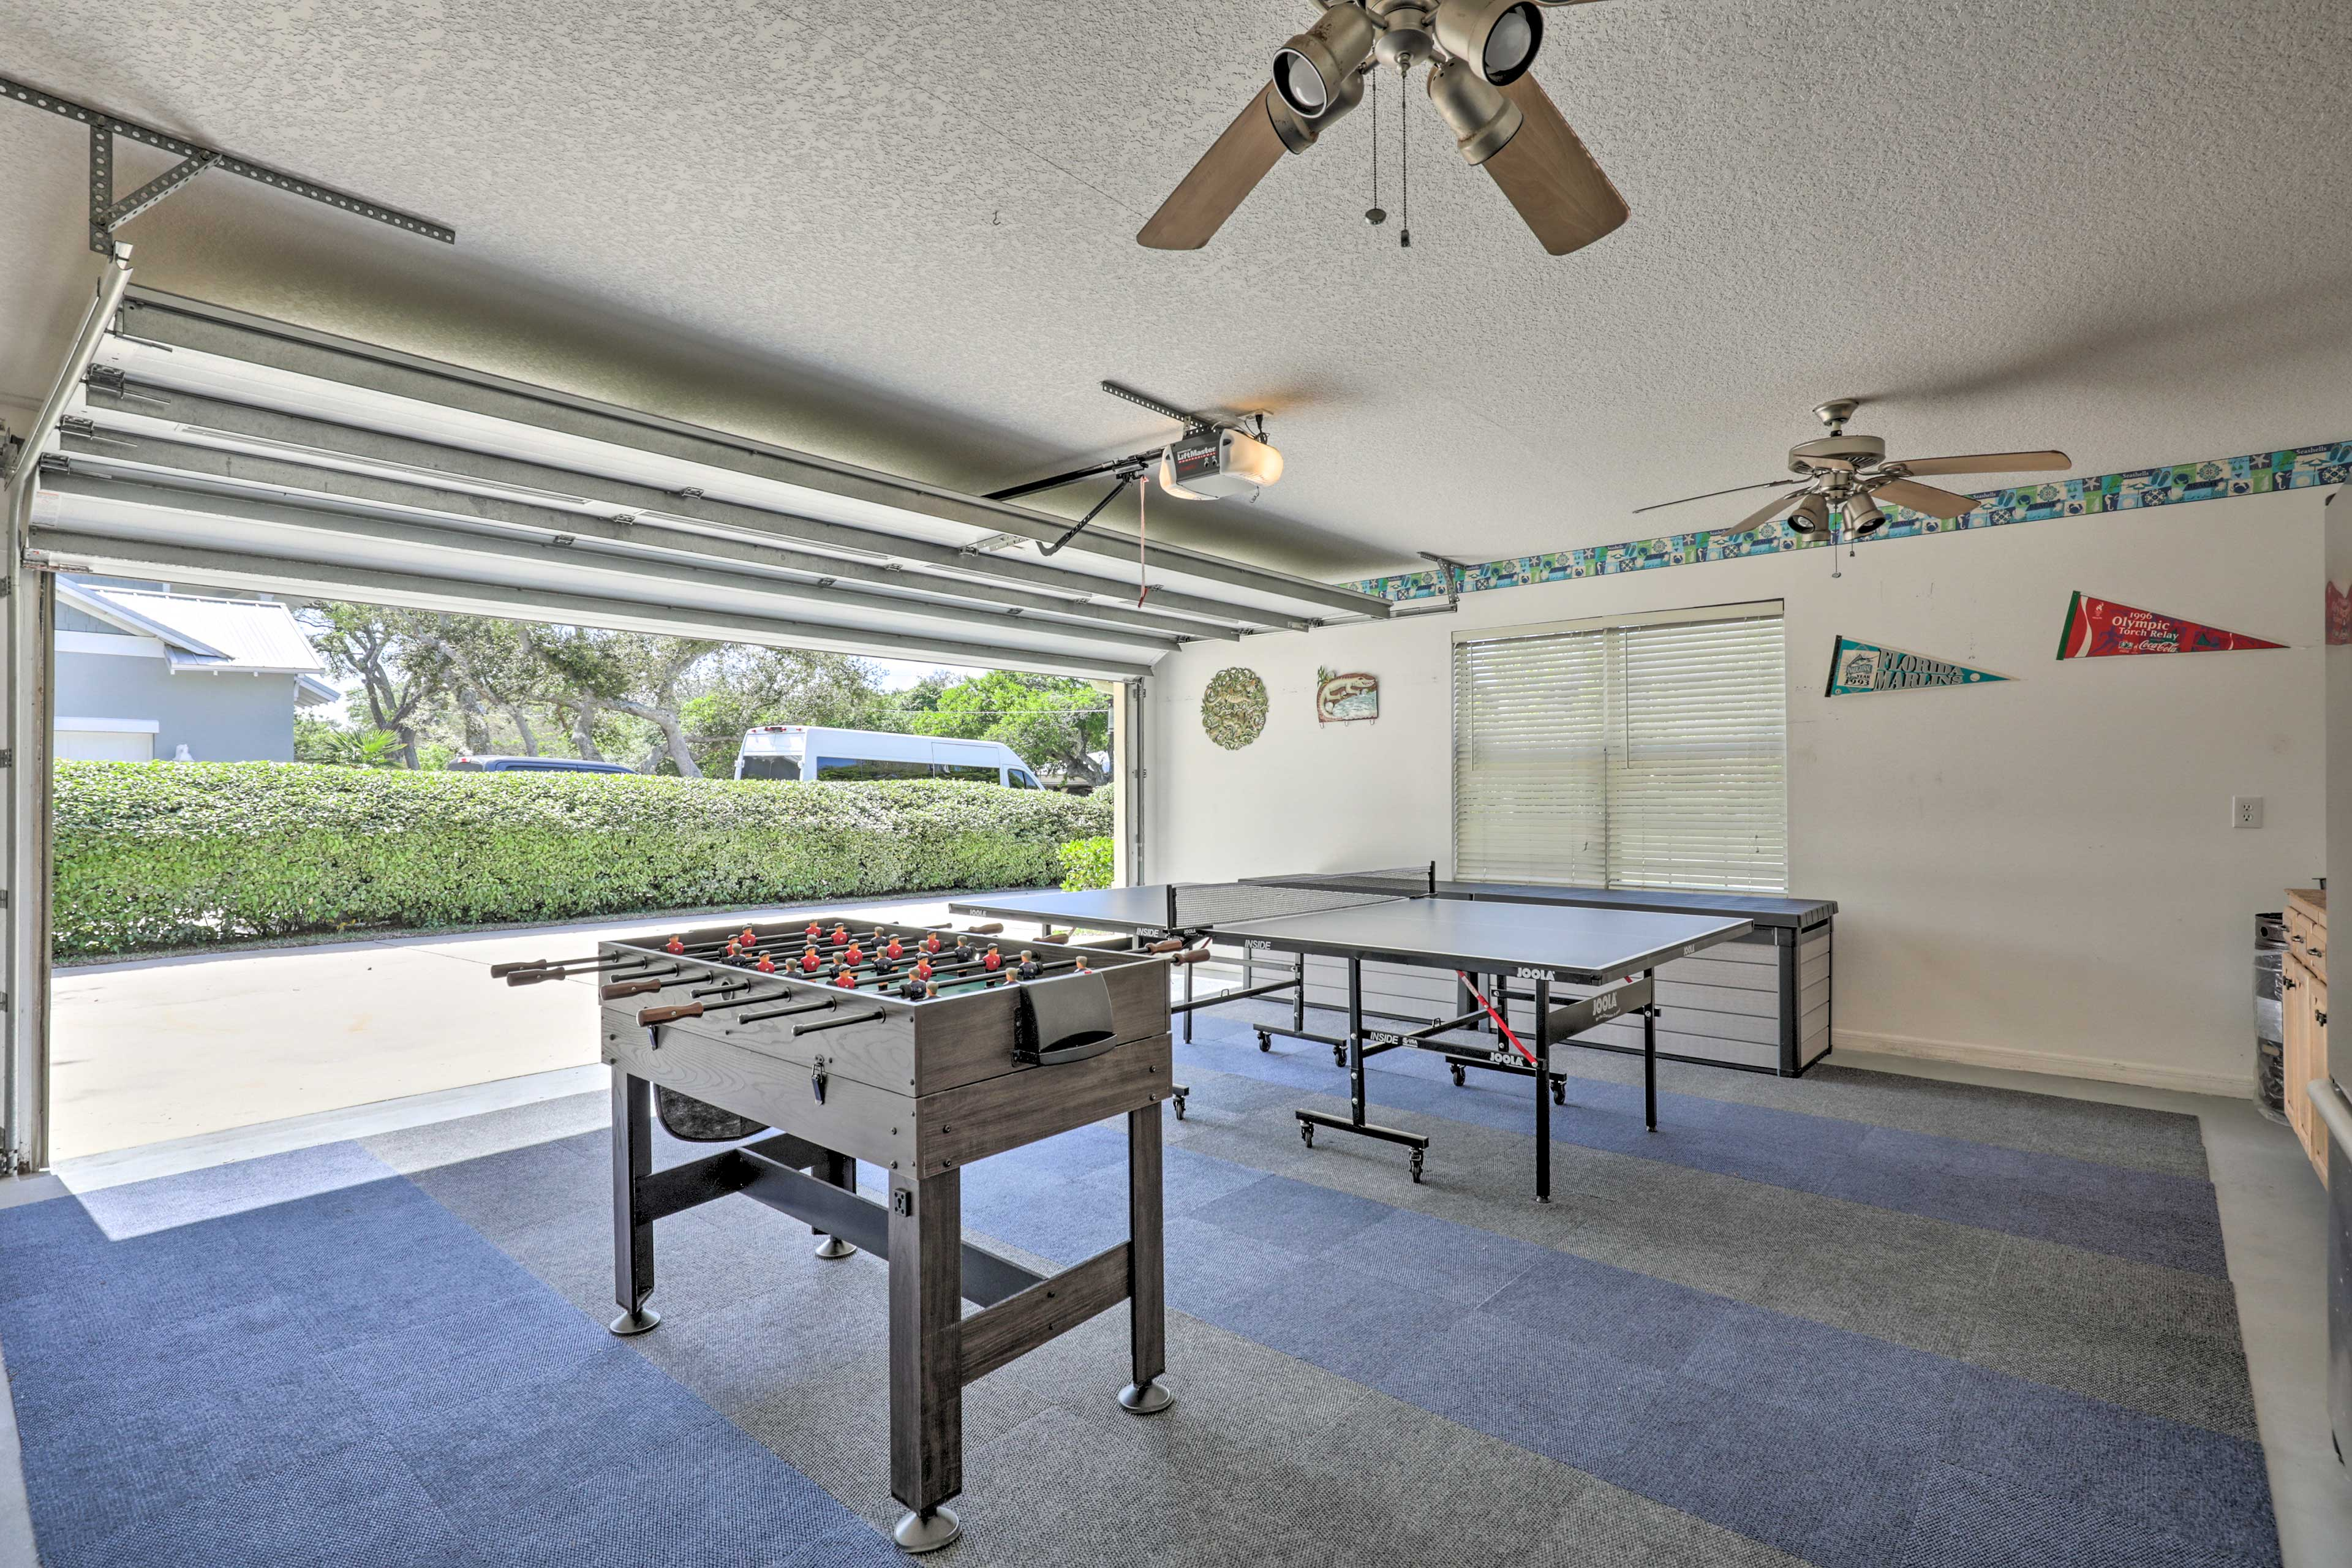 The garage has been converted to a game room with Foosball and ping pong.